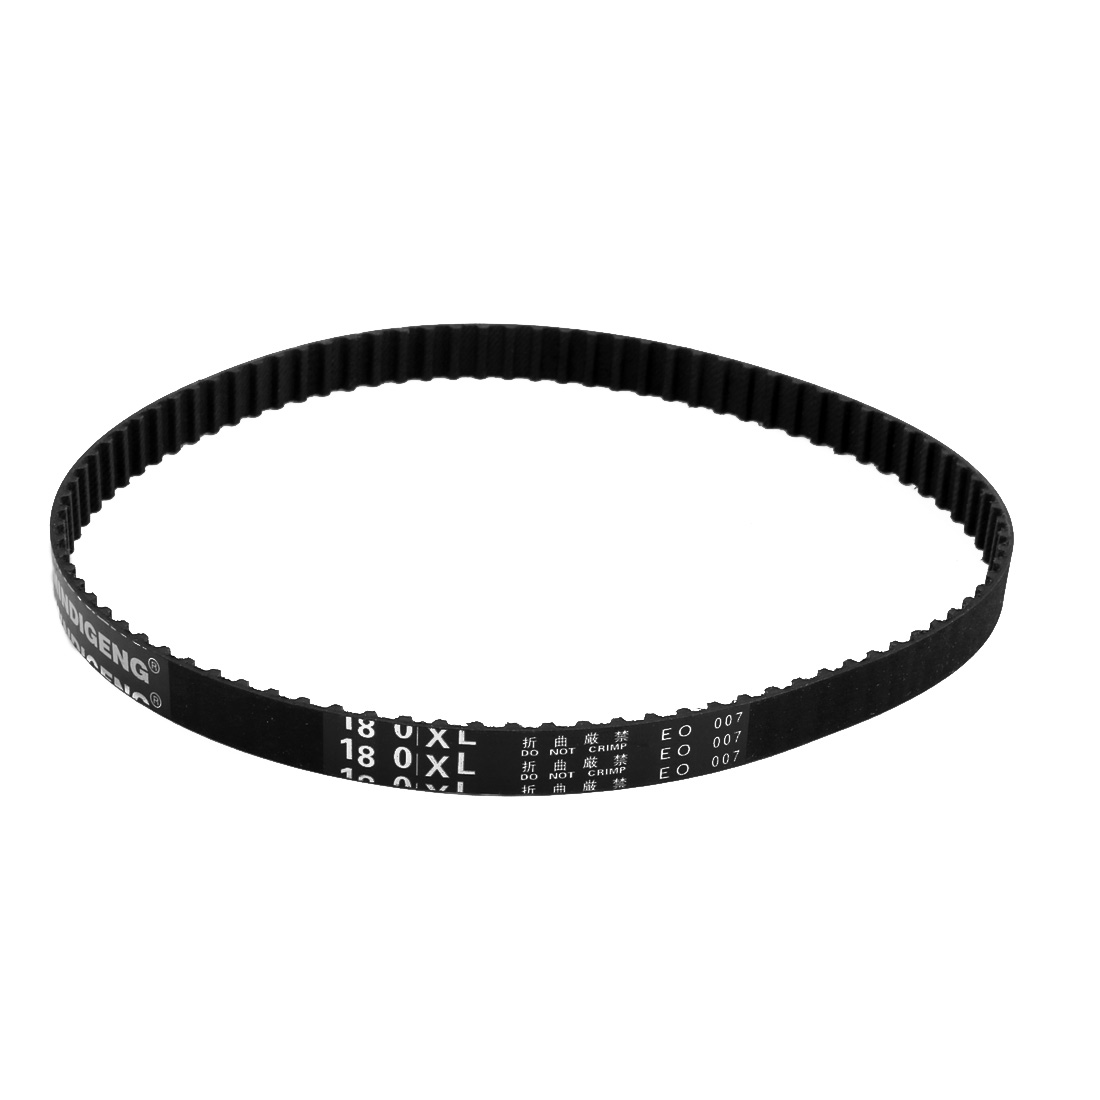 180XL 90 Teeth 10mm x 5.08mm Rubber Timing Geared Belt for Stepper Motor Black